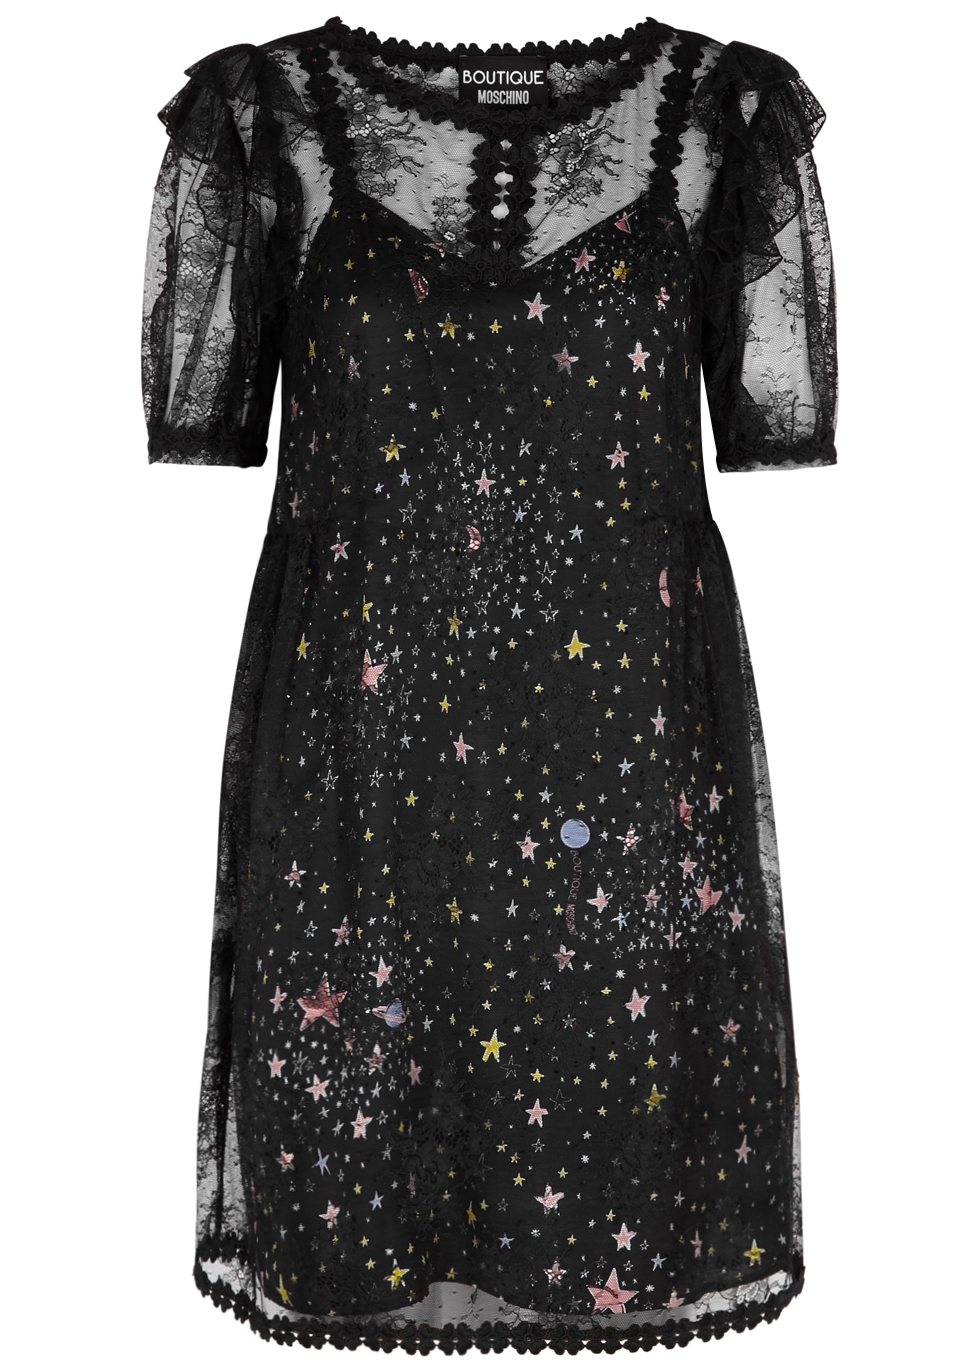 BOUTIQUE MOSCHINO BLACK PRINTED SATIN AND LACE DRESS